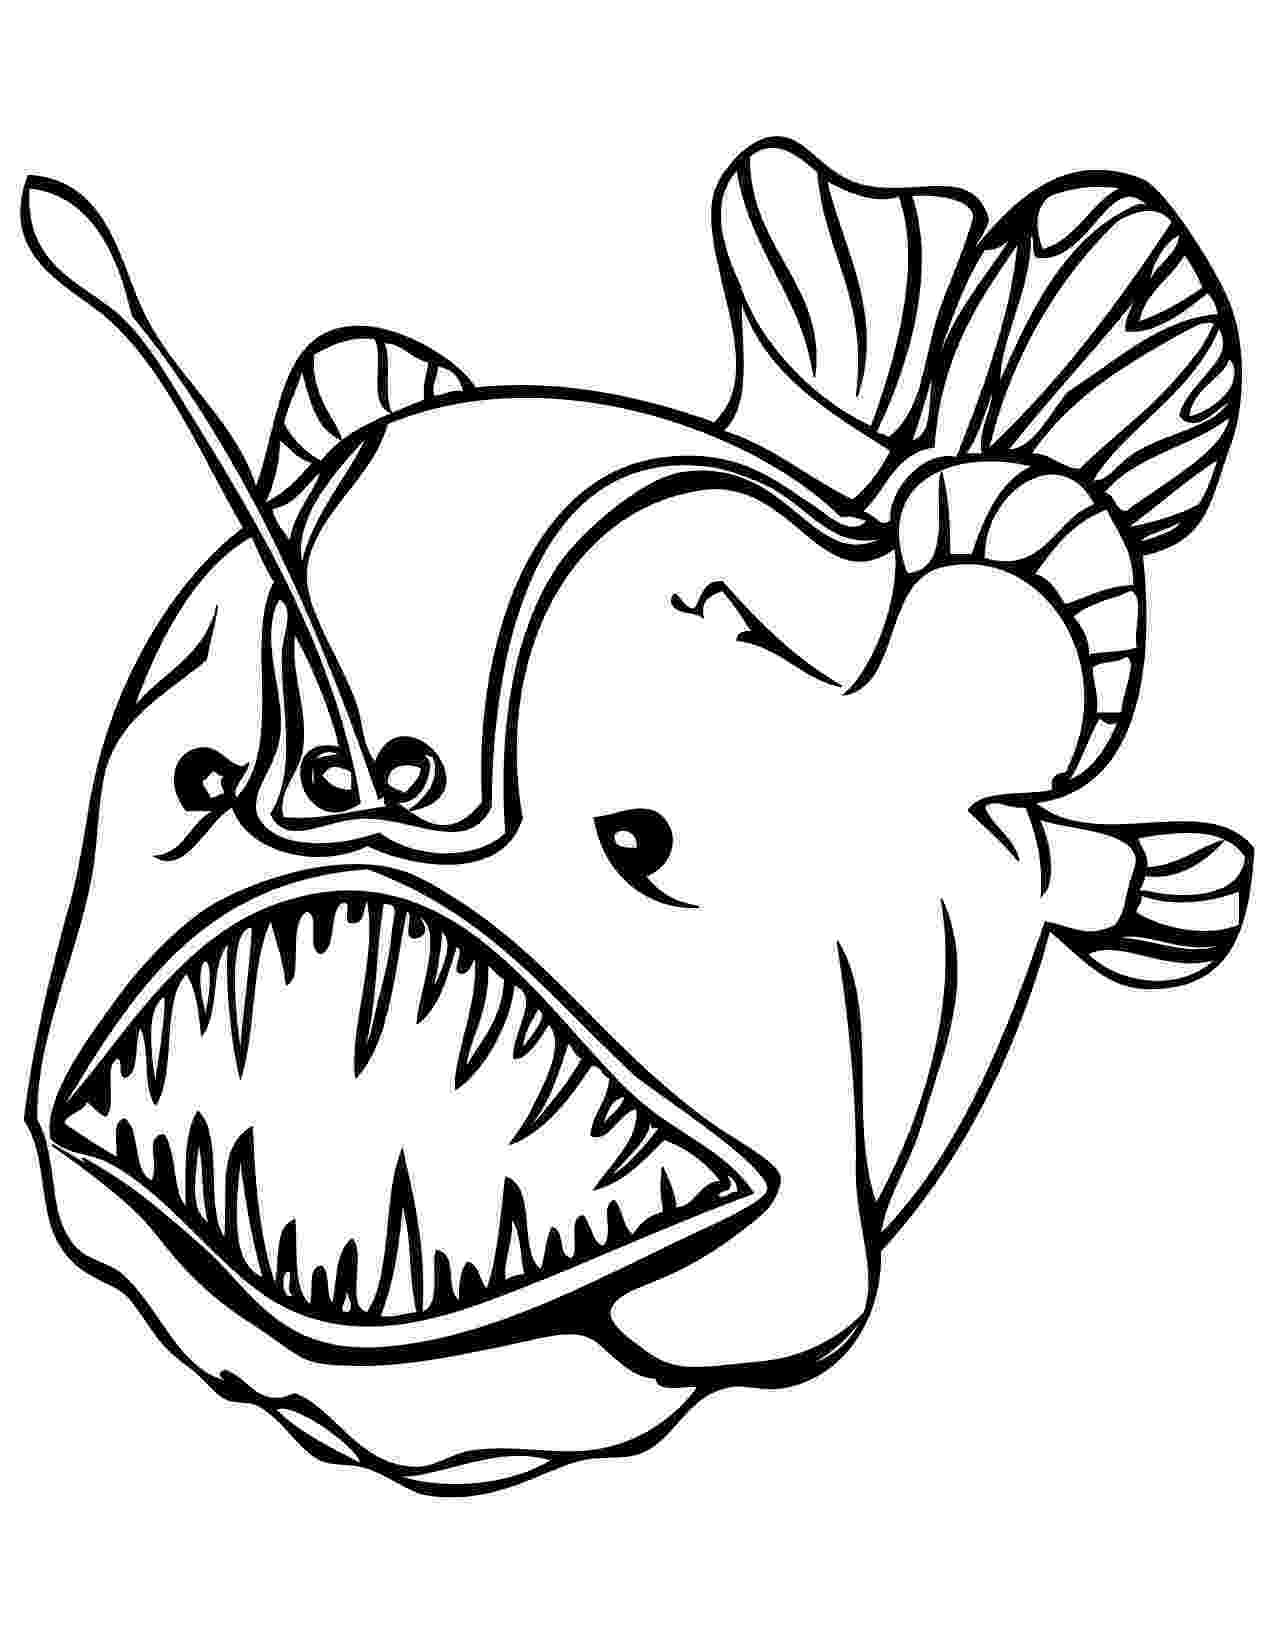 fish coloring page fish coloring pages dr odd fish coloring page